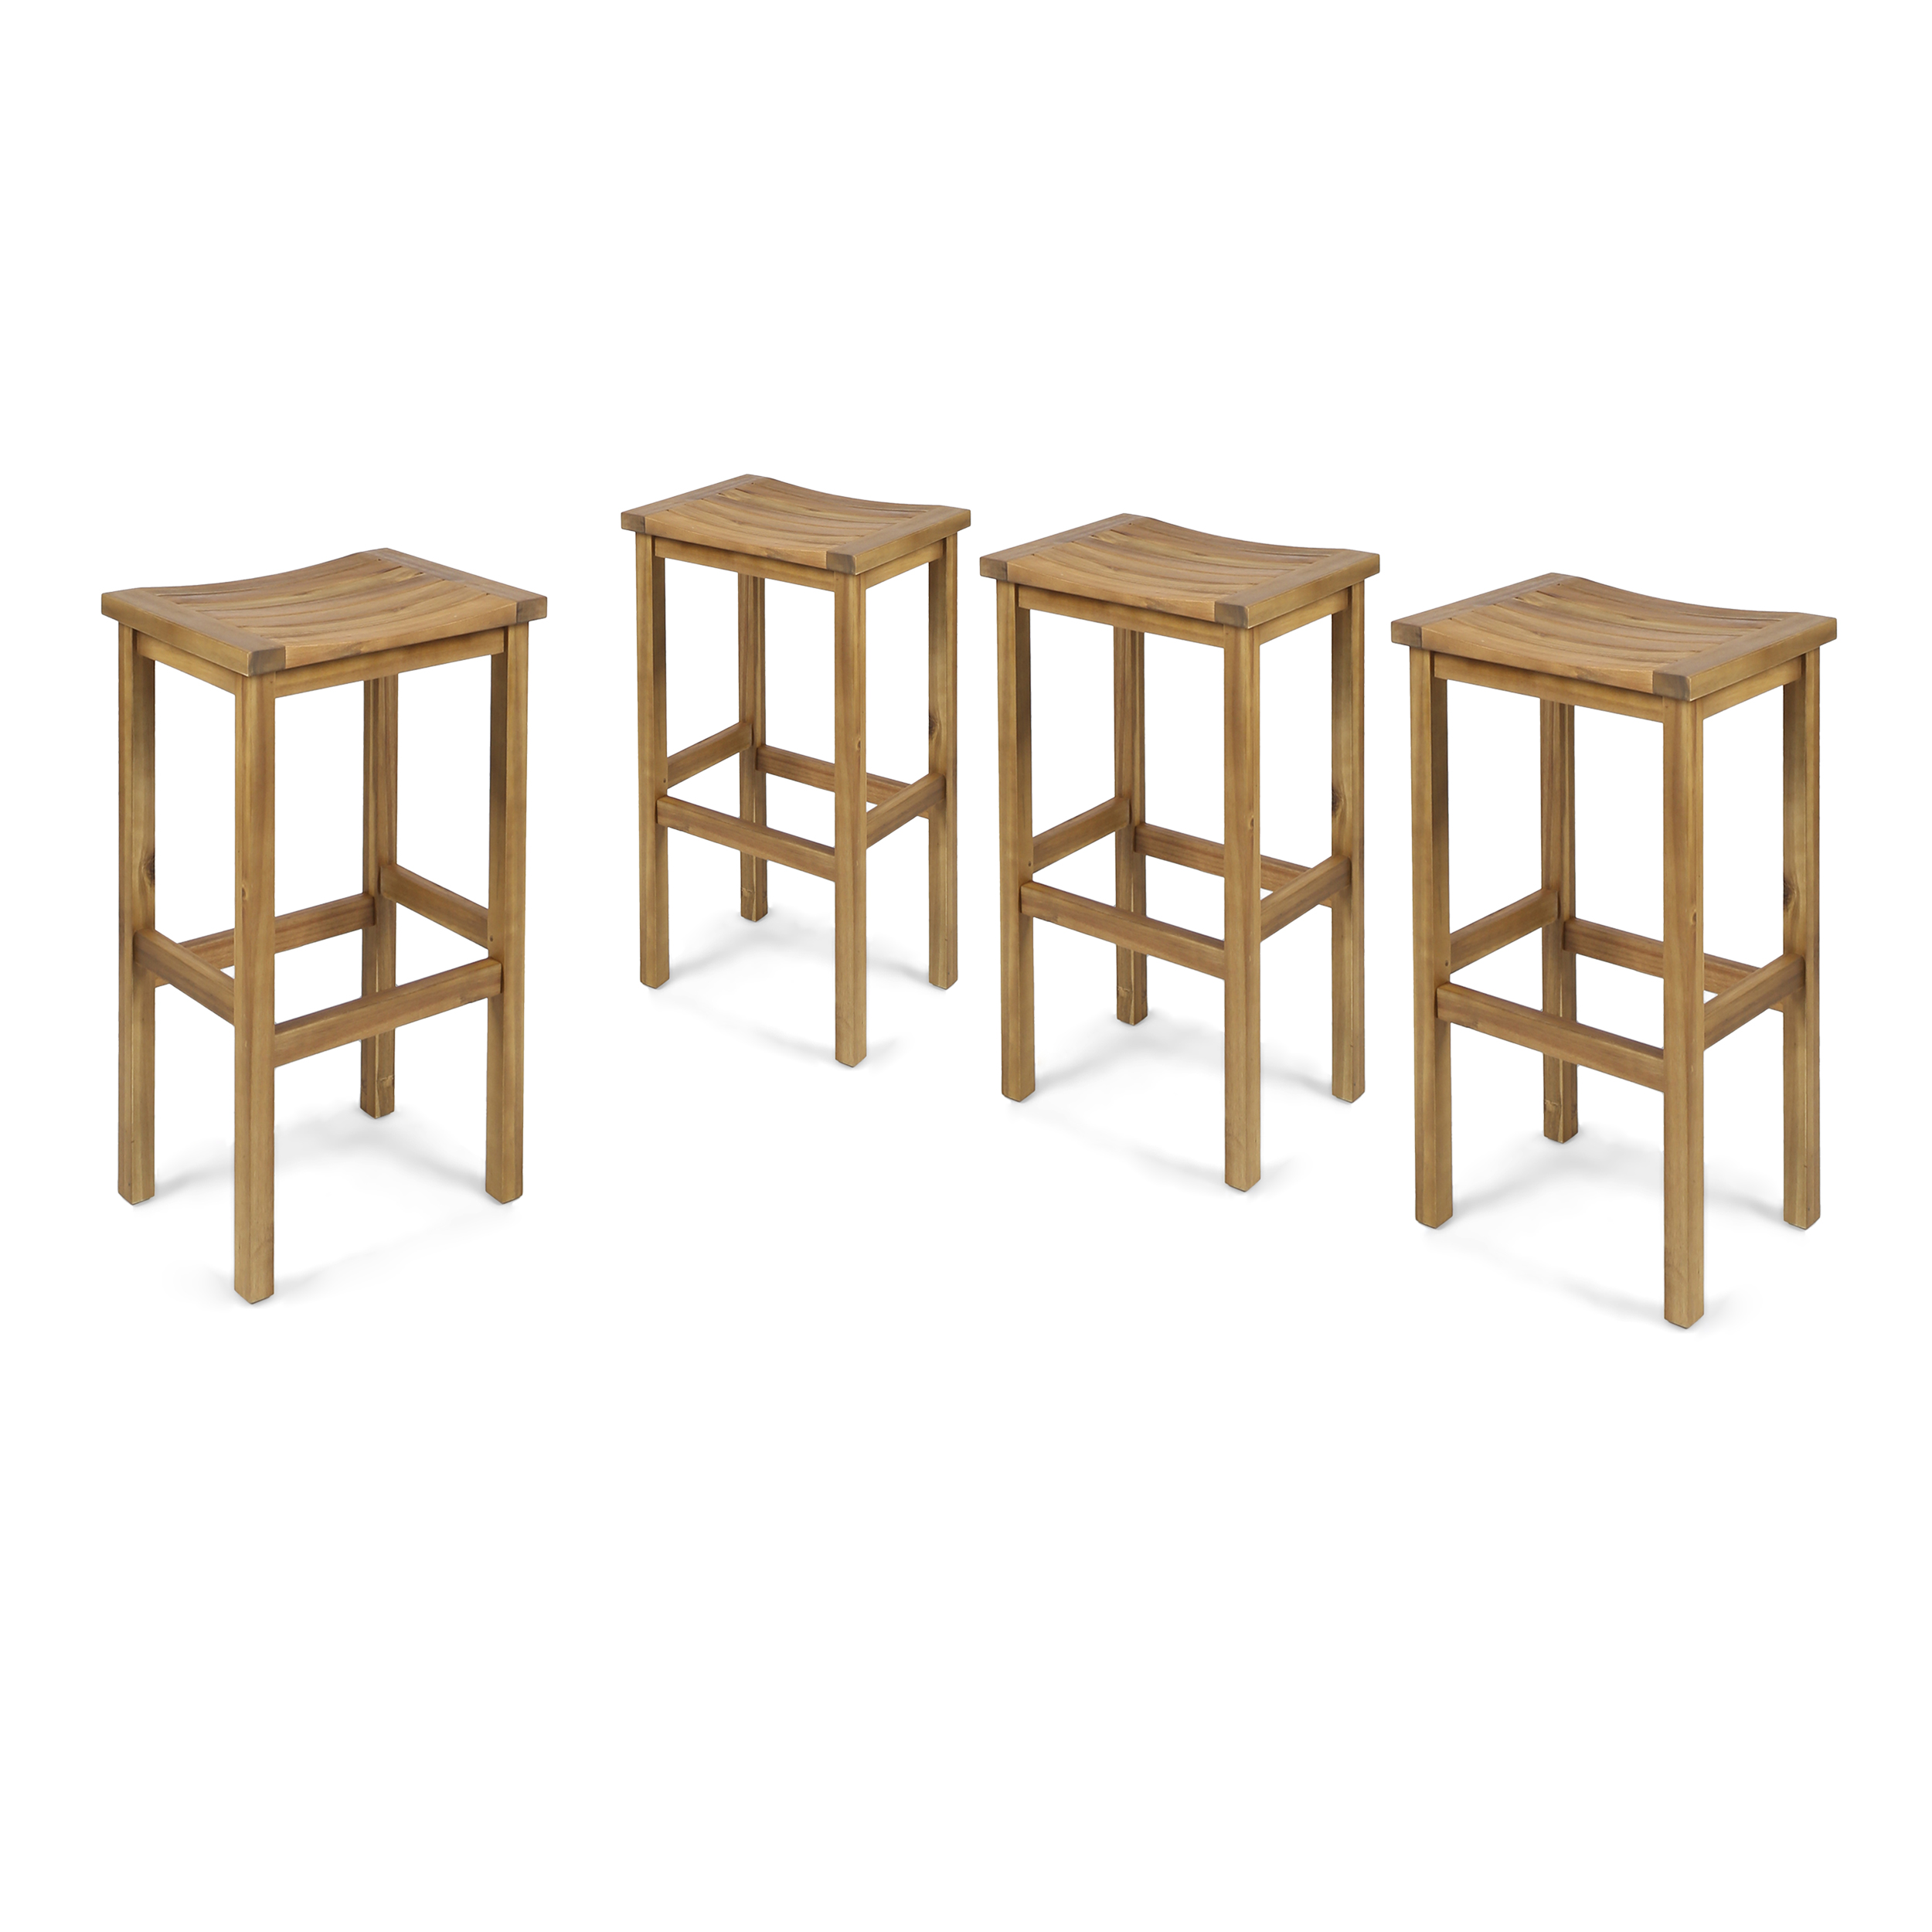 Cassie Outdoor 30 Inch Acacia Wood Barstools, Set of 4, Natural Finish